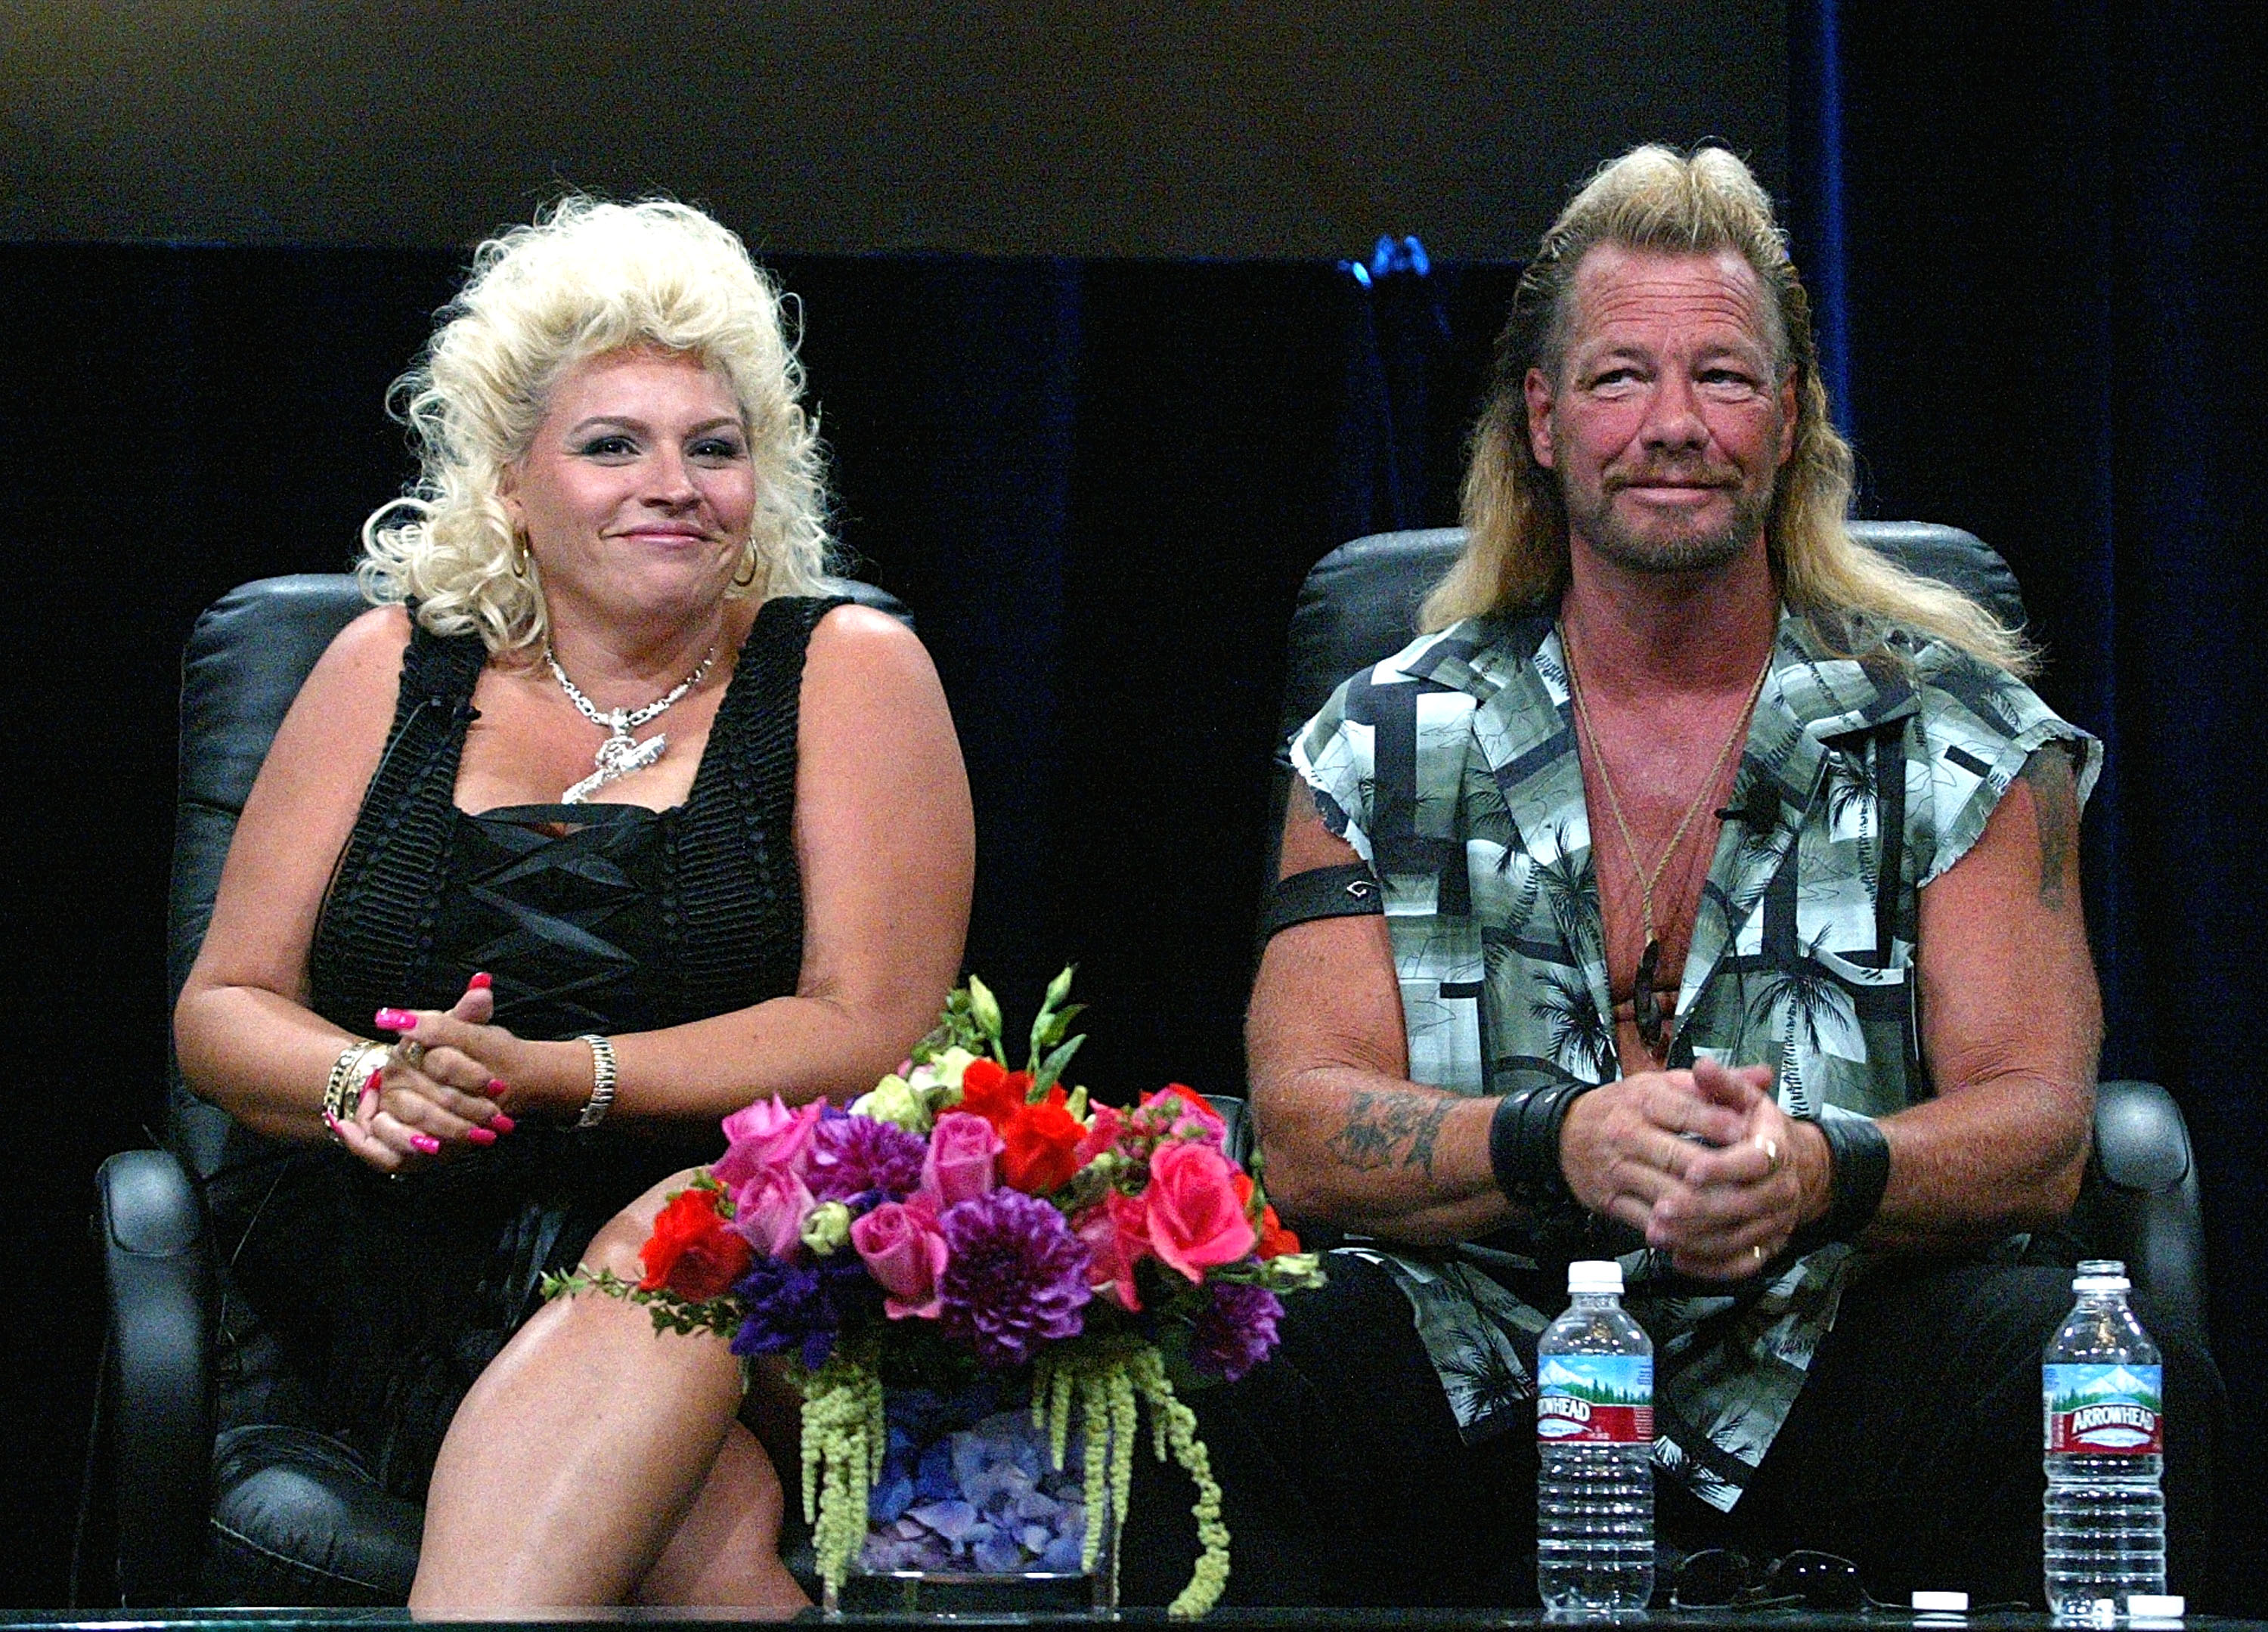 Family: Beth Chapman of bounty-hunting fame in medically induced coma